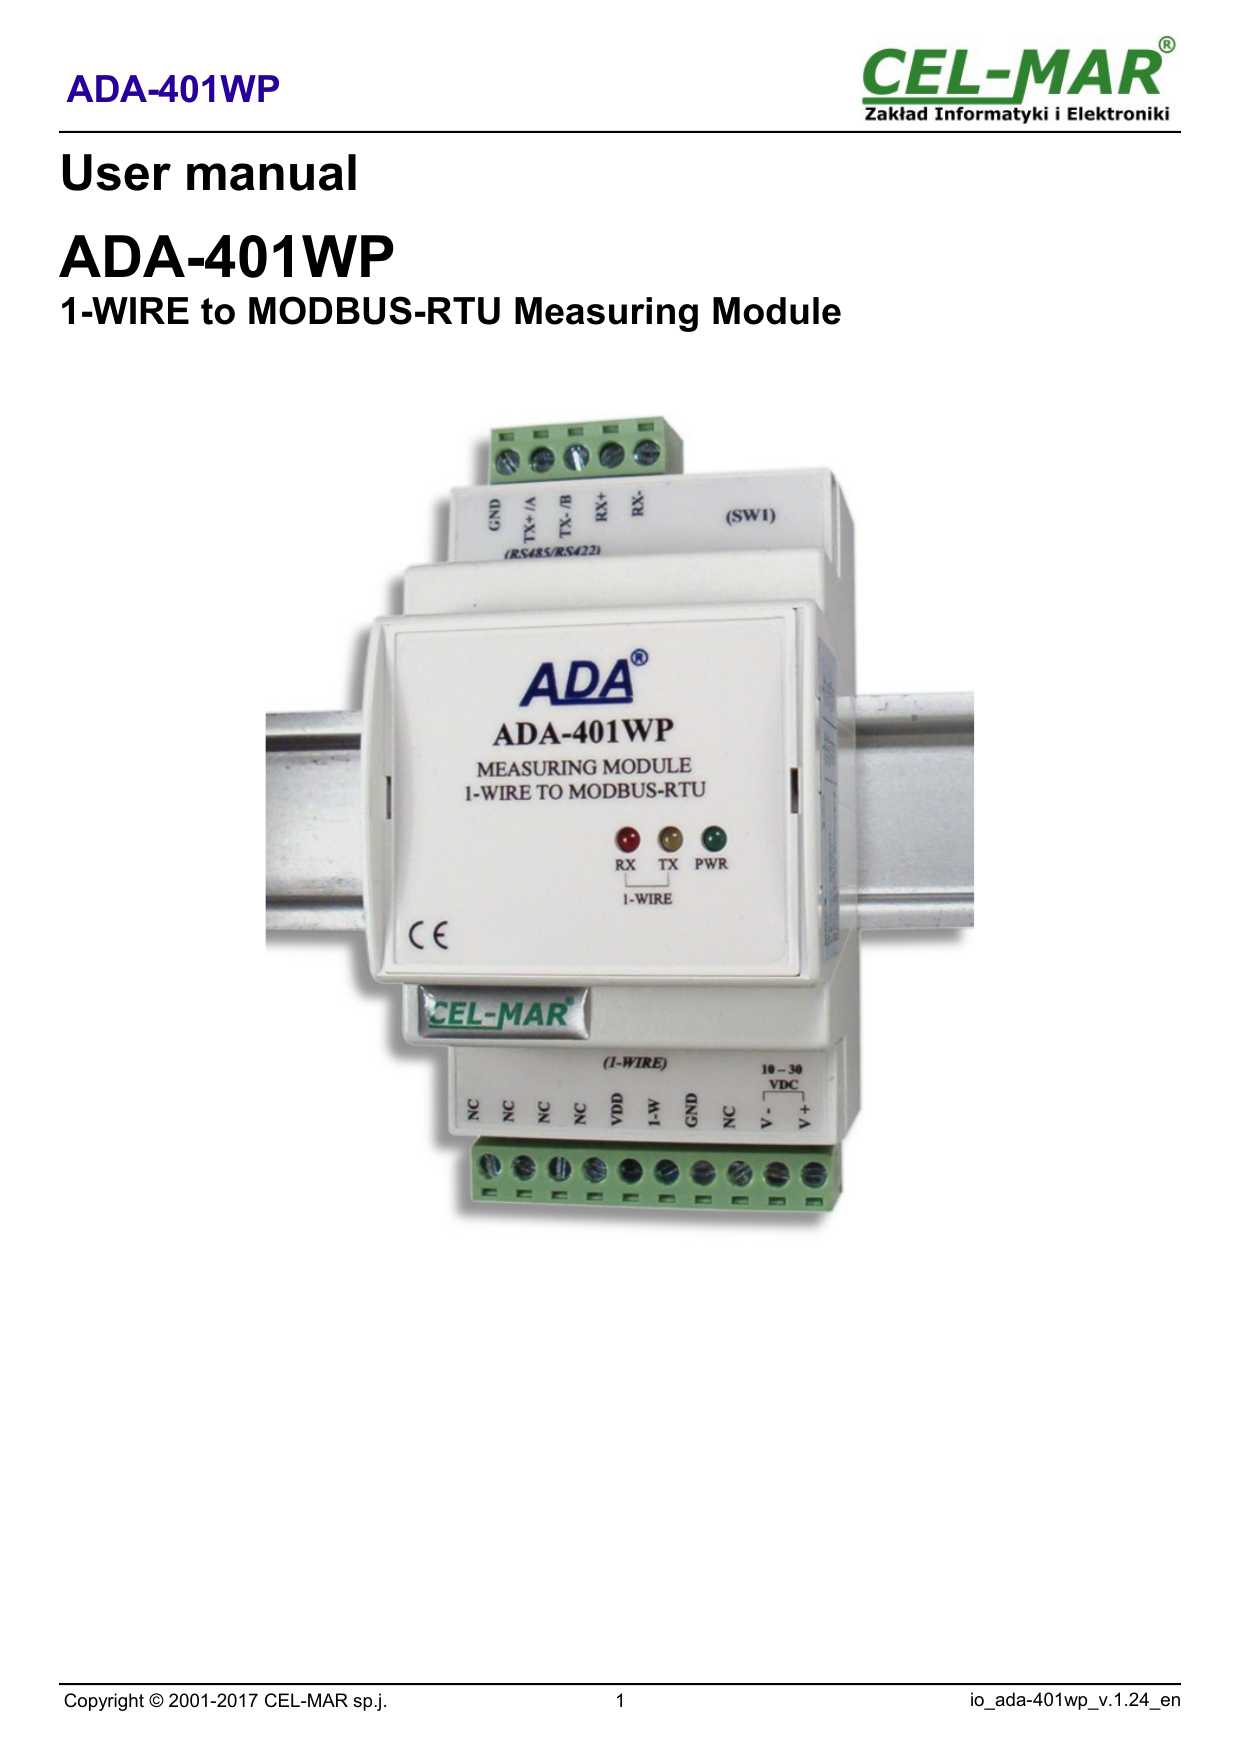 1 Wire To Modbus Rtu Measuring Module Ada 401wp Cel Mar Wiring